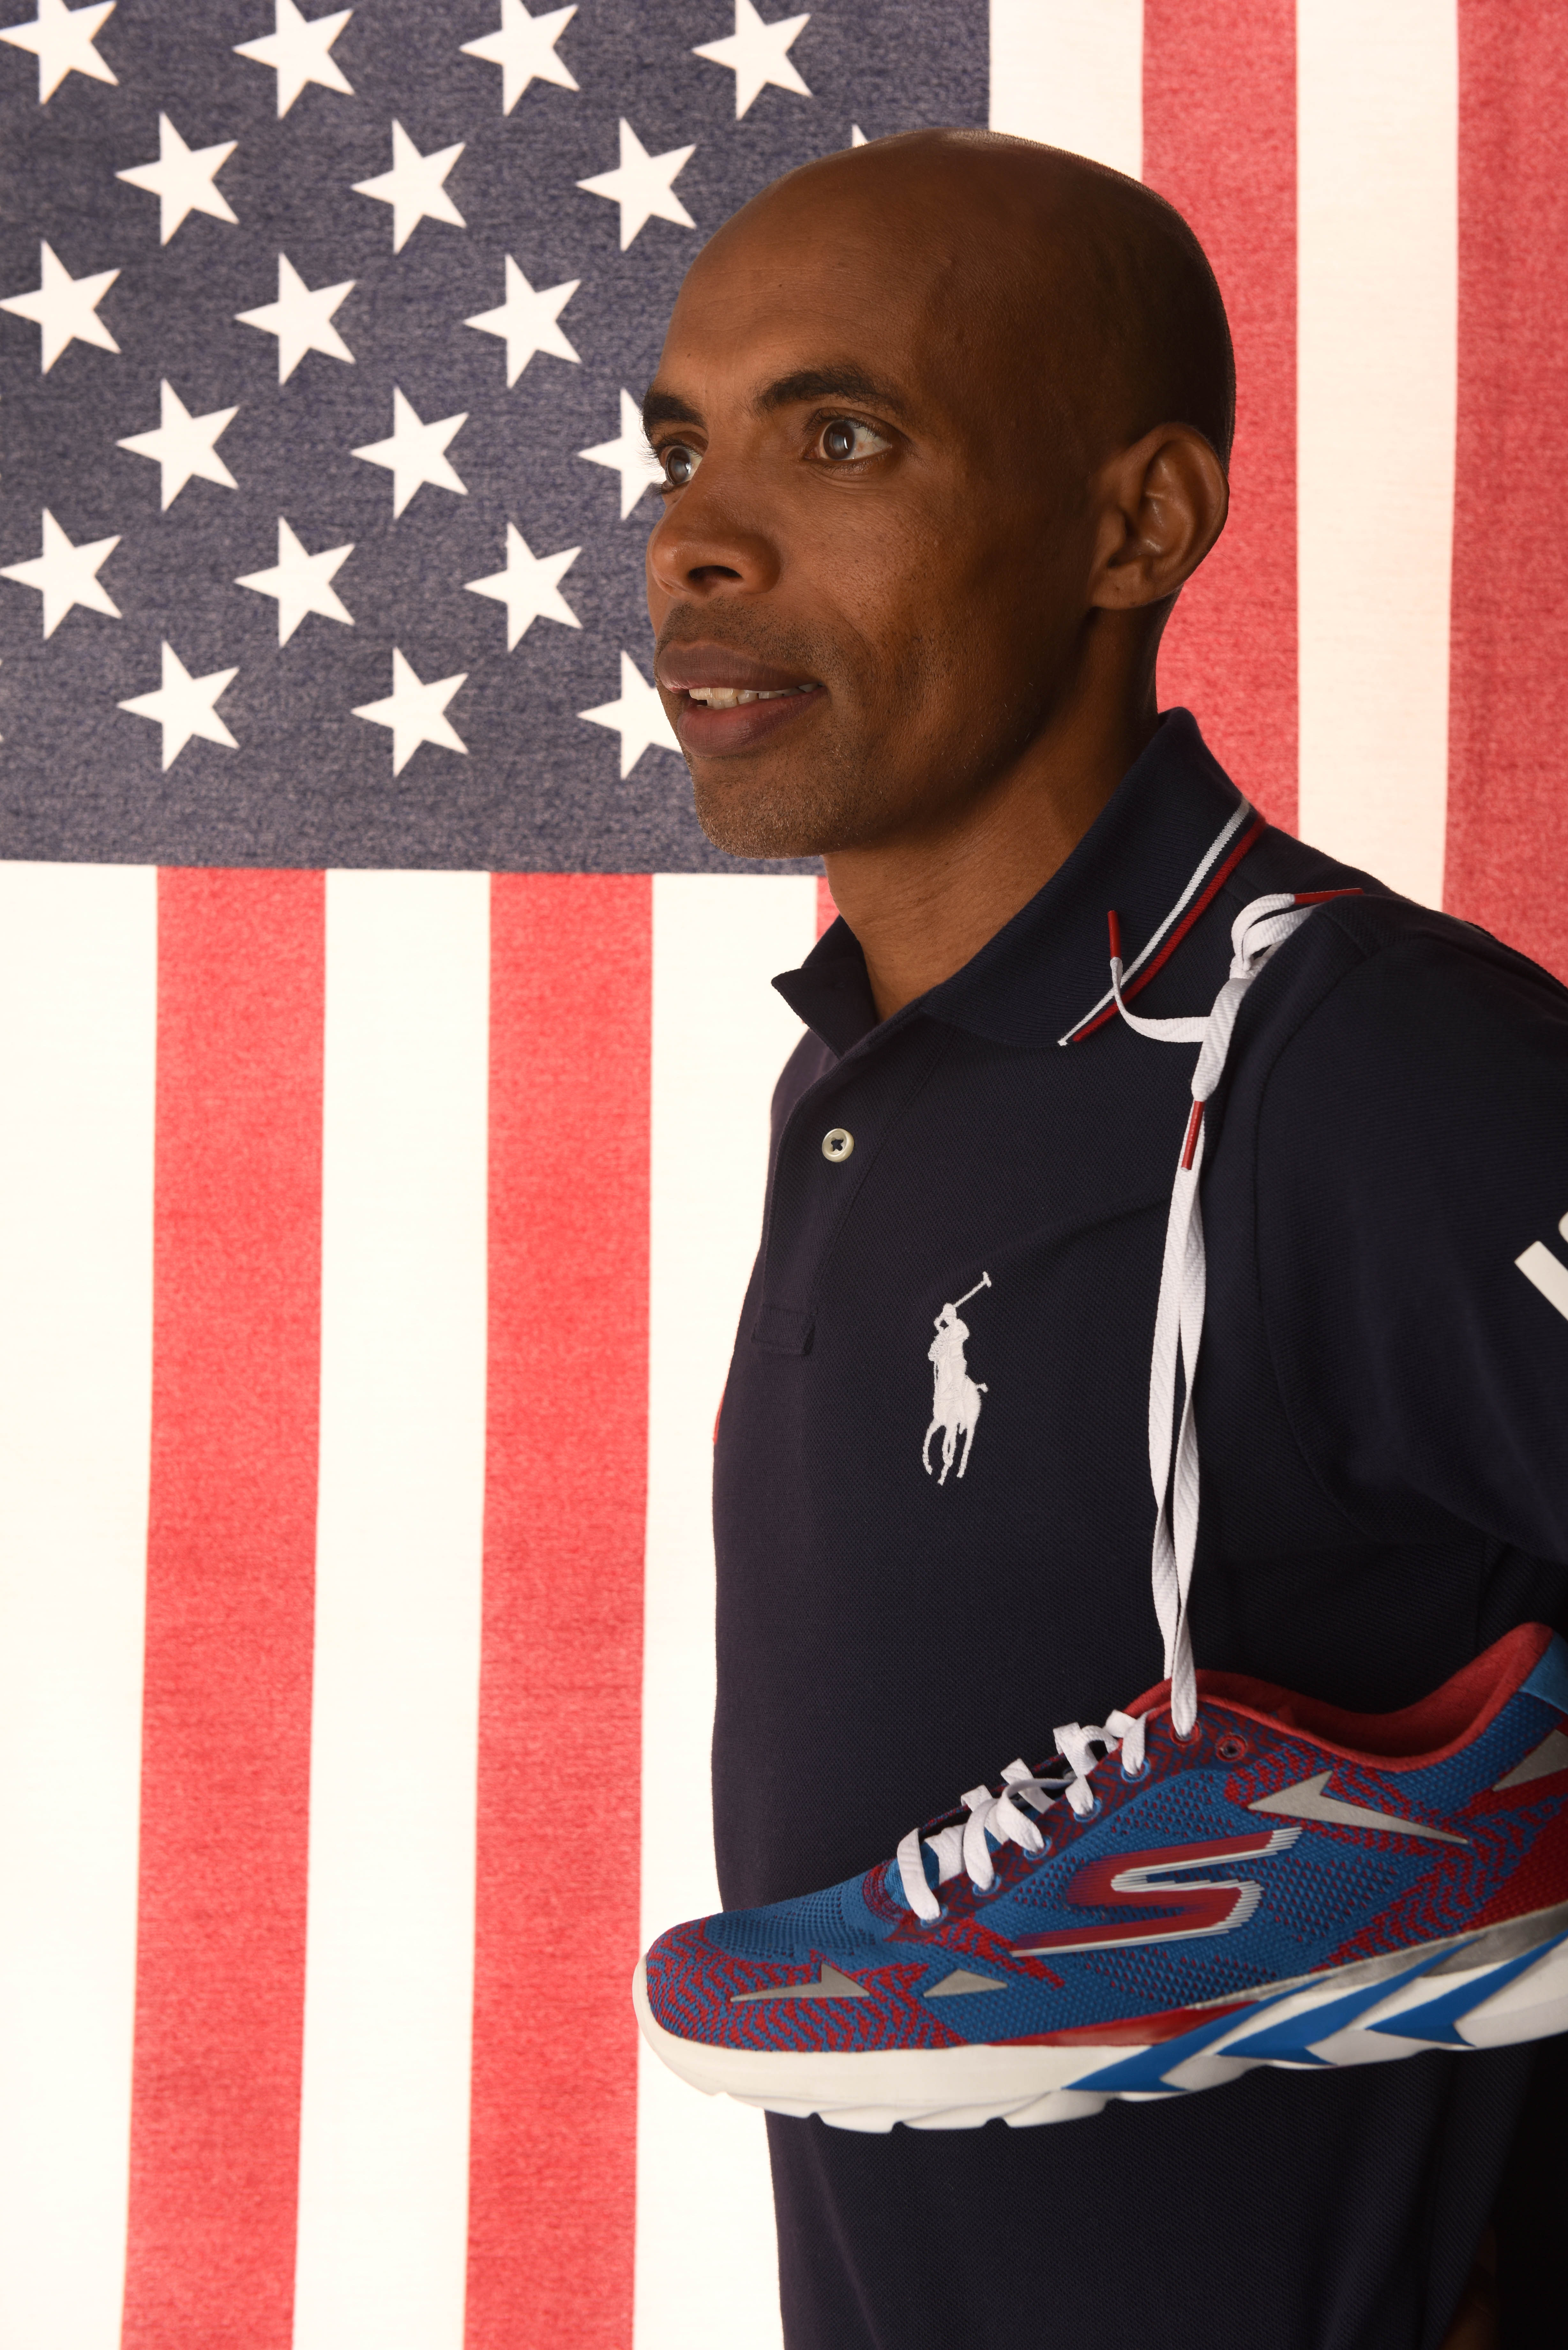 Marathon runner Meb Keflezighi is one of the 19 Bruin athletes who will compete for Team USA in the Rio Olympic Games.